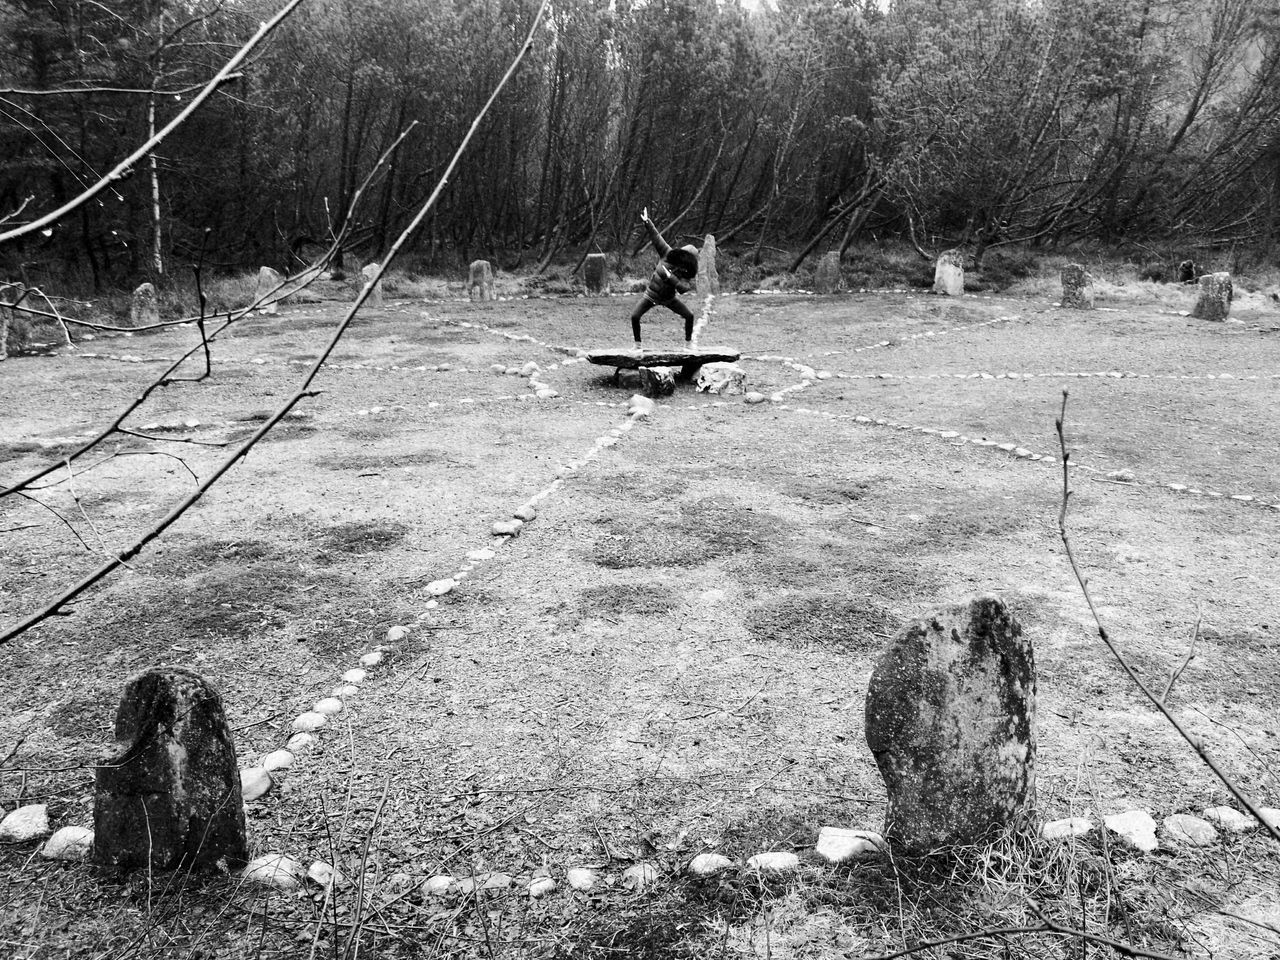 Domsteinane Sola Tree Woods Monochrome Stoneage Dance Gods Science Rain Nature Outdoors Archeology Stone Age Sacrifice Sacred Sacred Places Geometry Sacrificing EyeEmNewHere